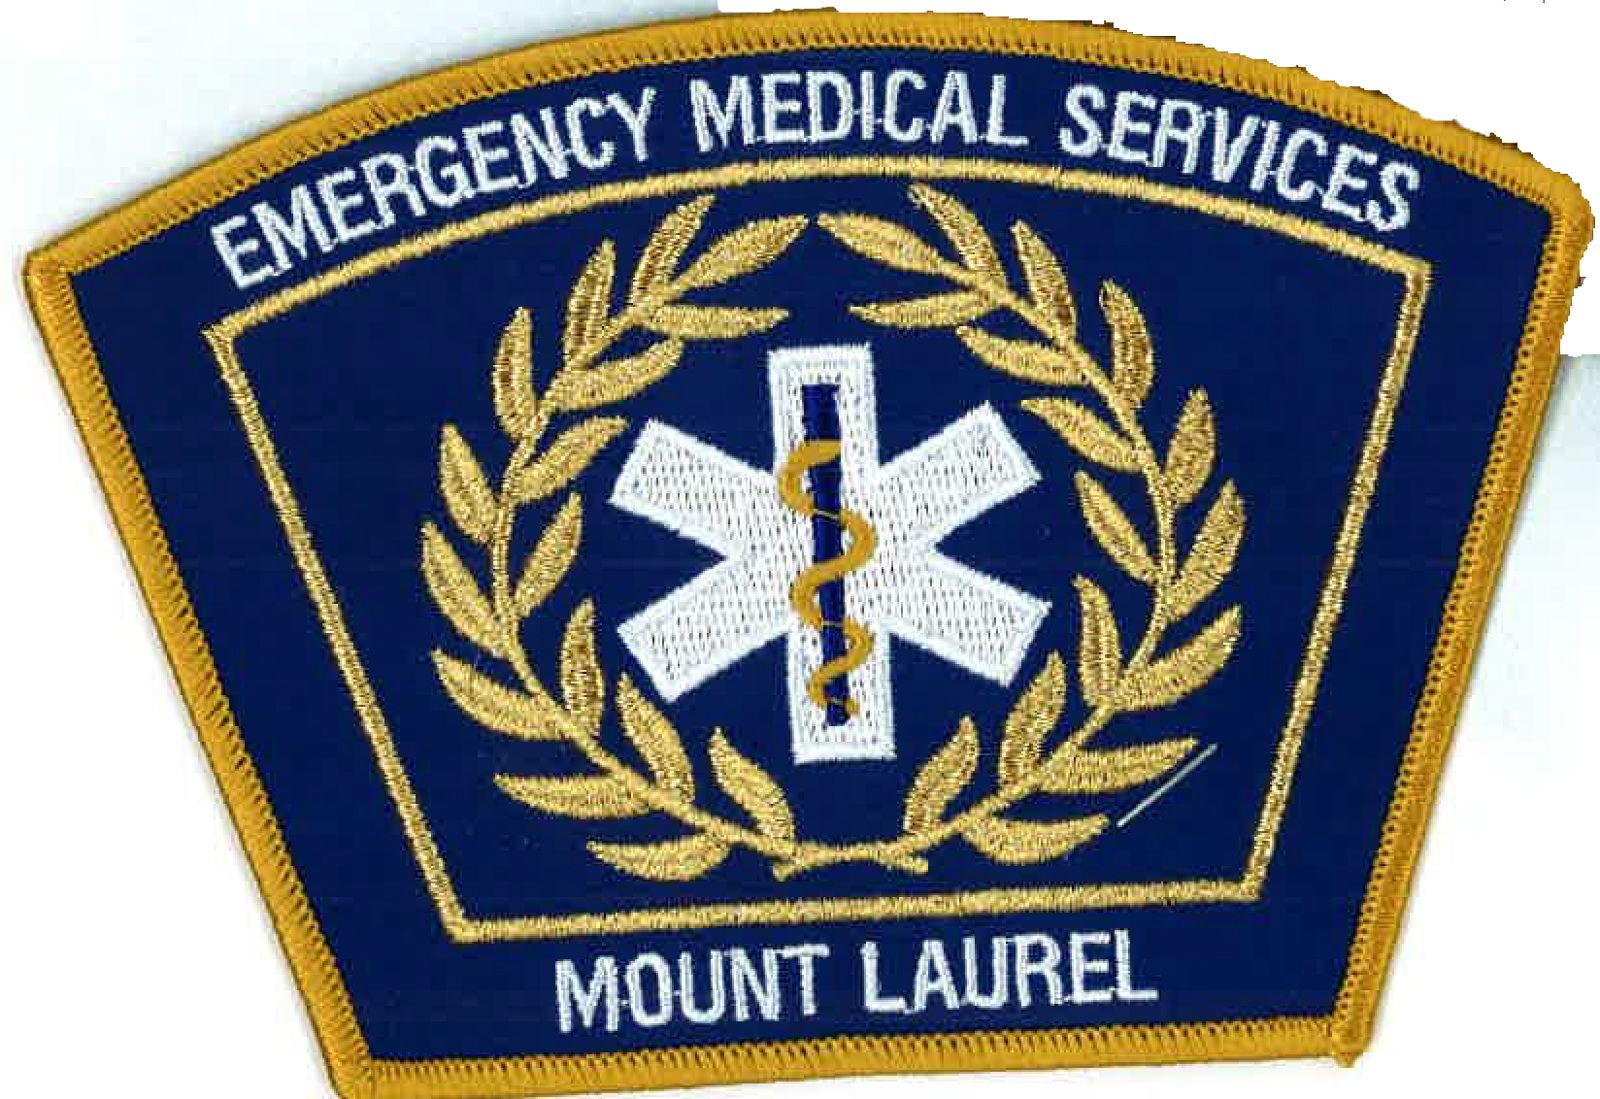 MOUNT LAUREL EMS SLEEVE 1109-223MTLAUREL